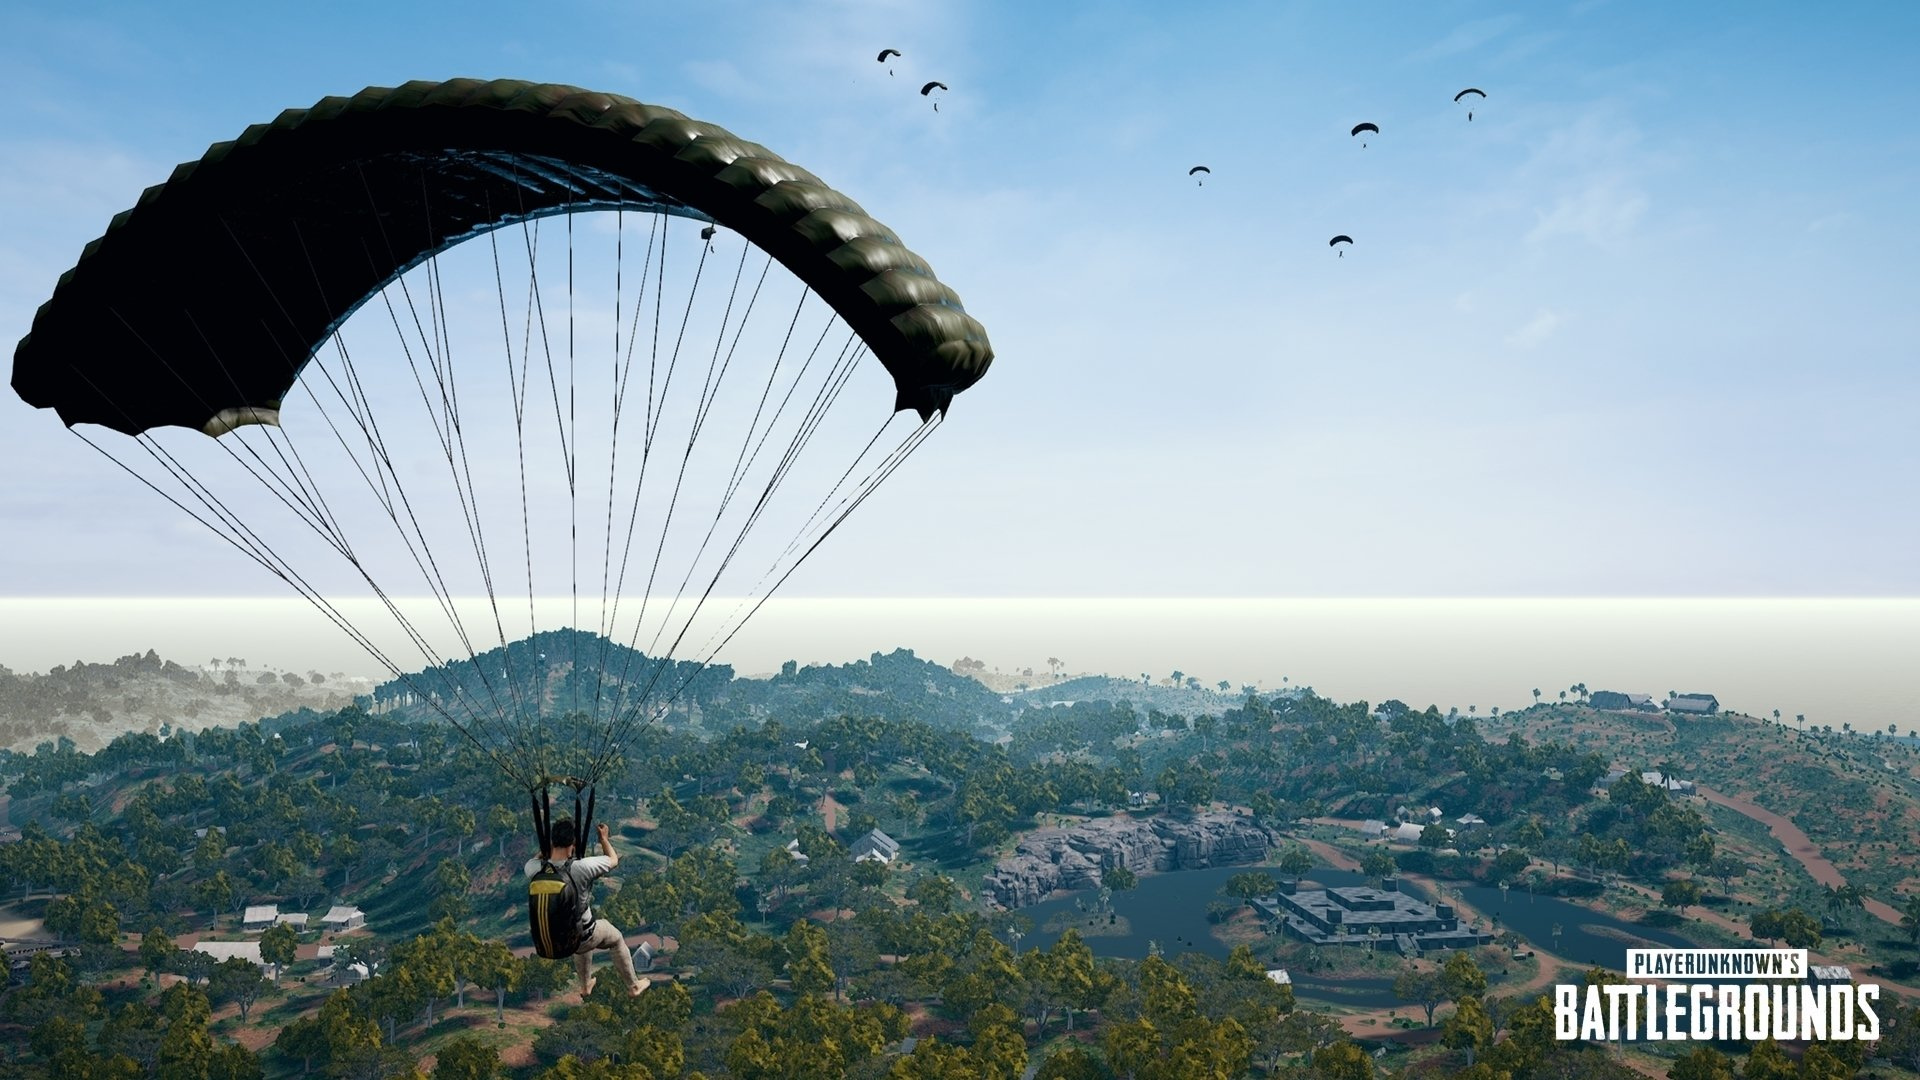 Pubg Hd Cover Photo: Background Images - Read Games Review